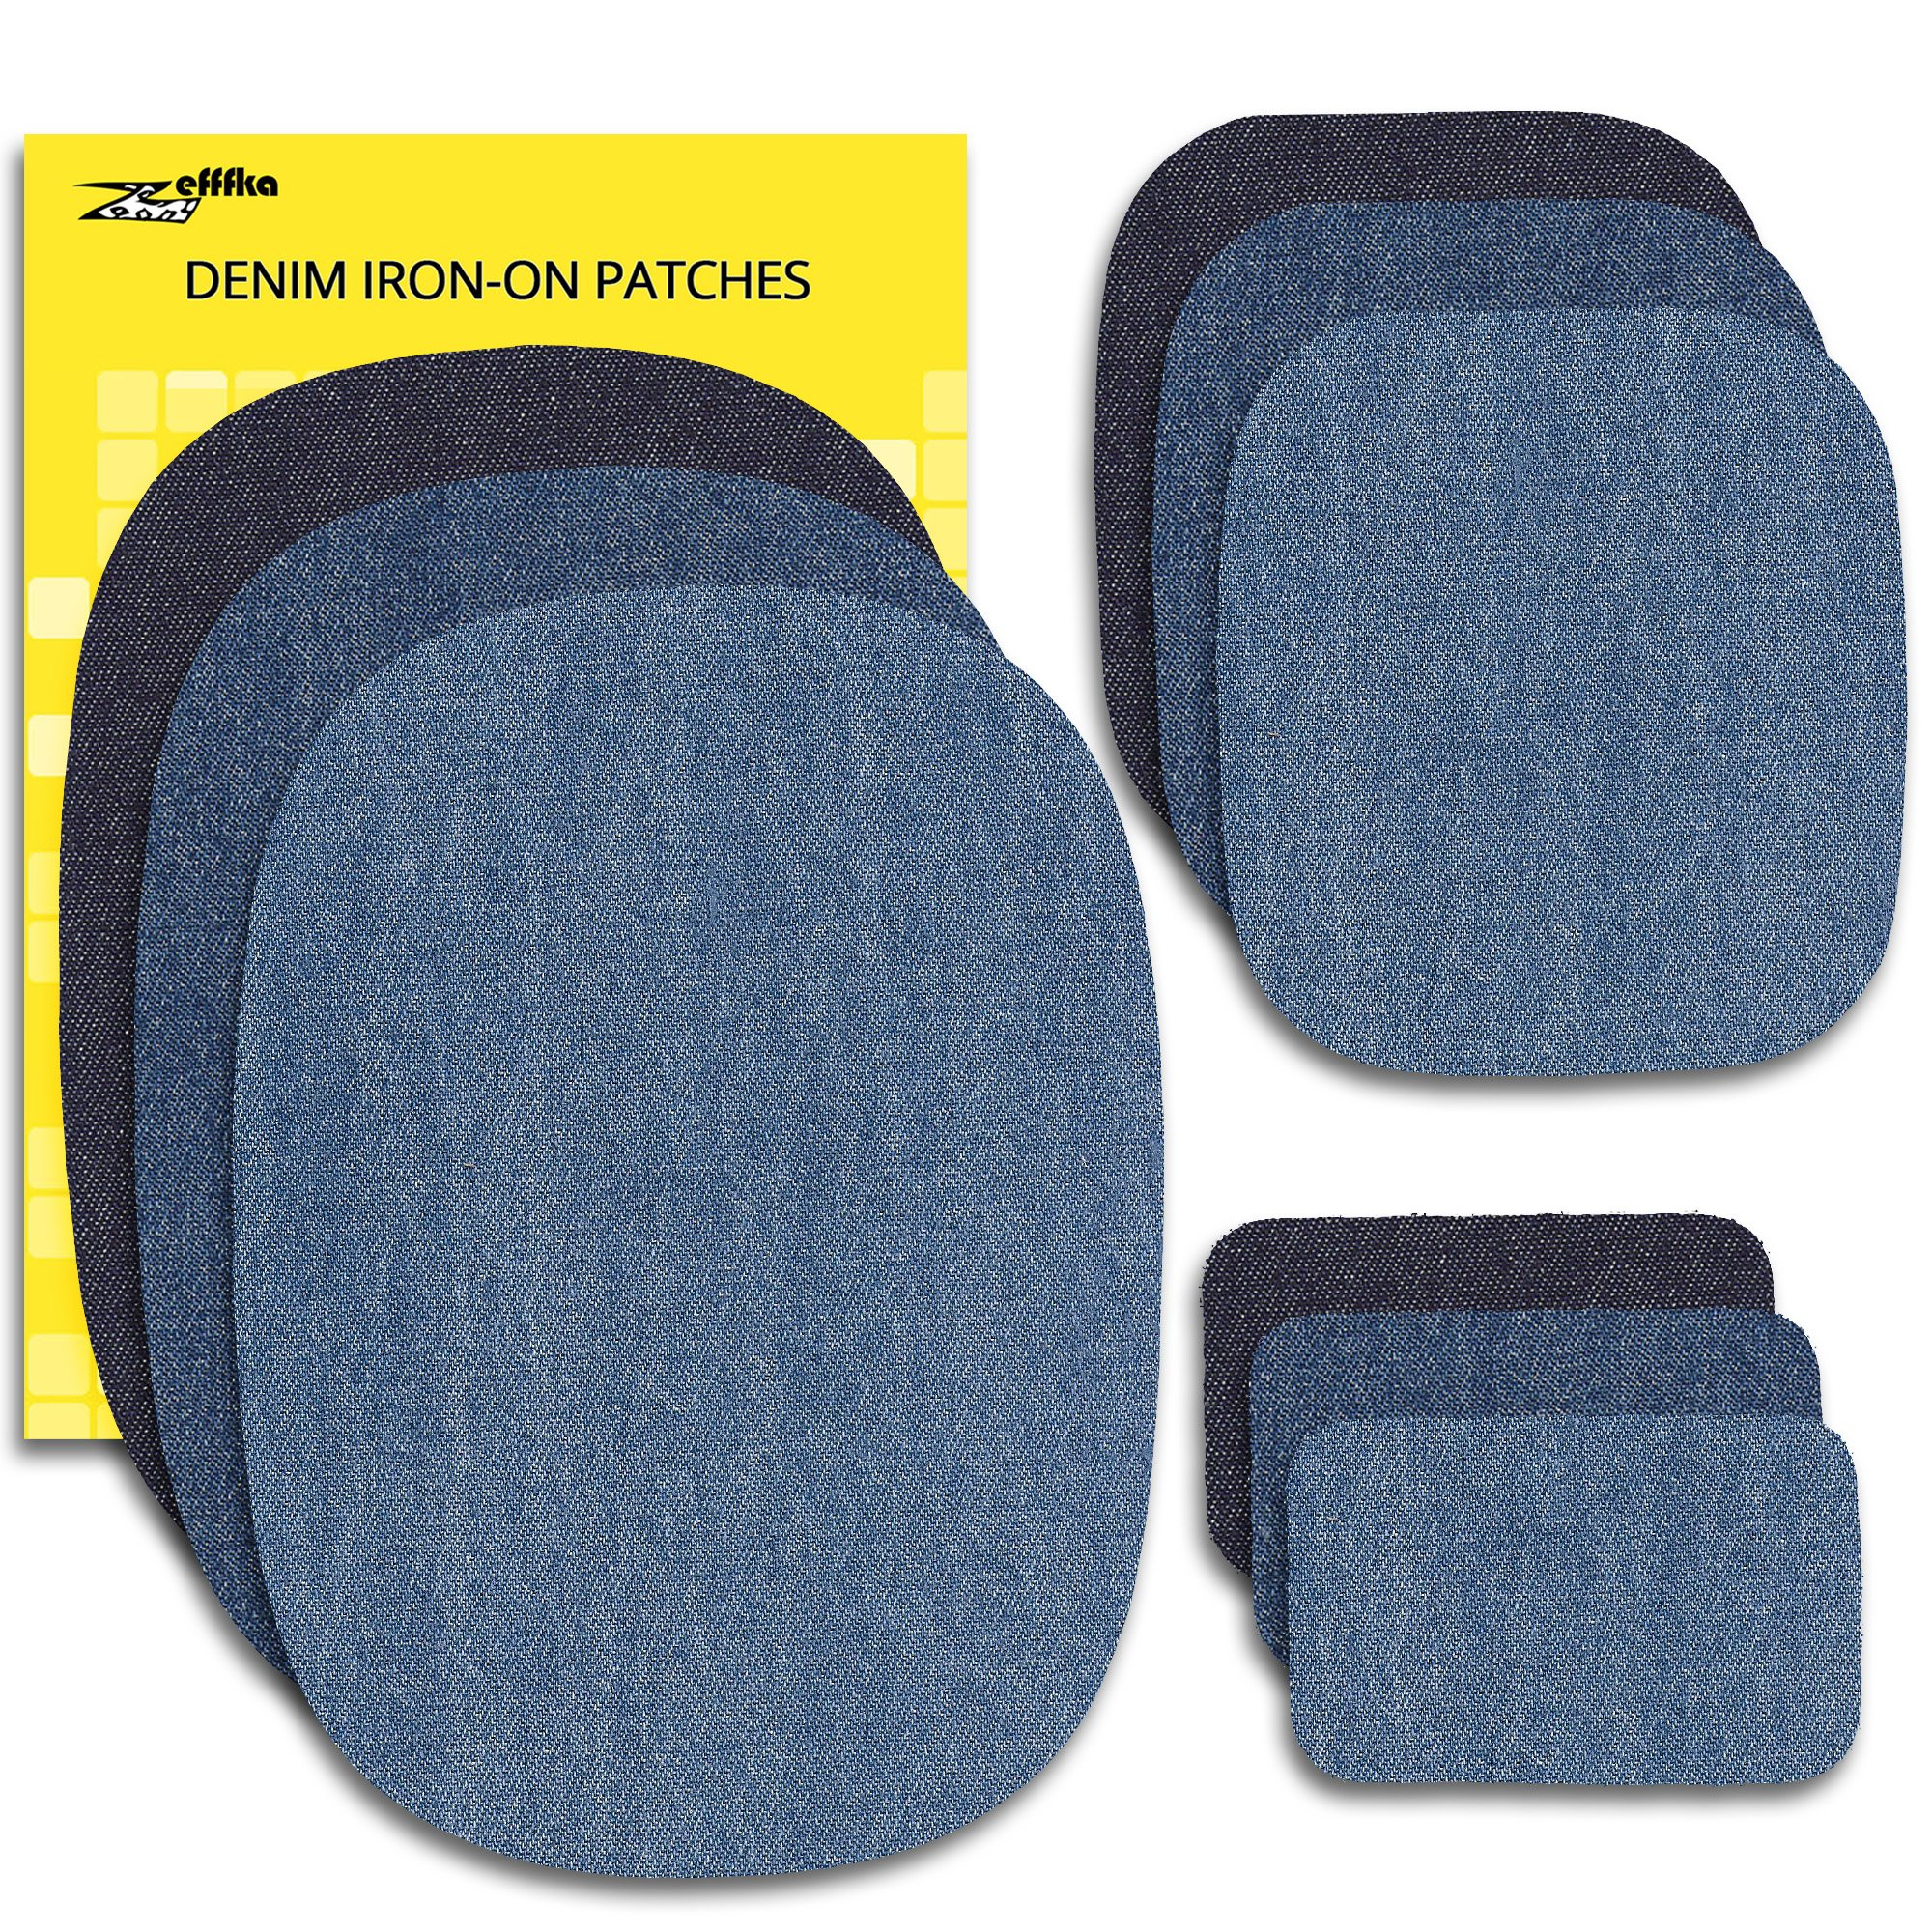 Zefffka Denim Iron On Jean Patches No-Sew Shades Of Blue 9 Pieces Assorted Cotton Jeans Repair Kit Different Sizes